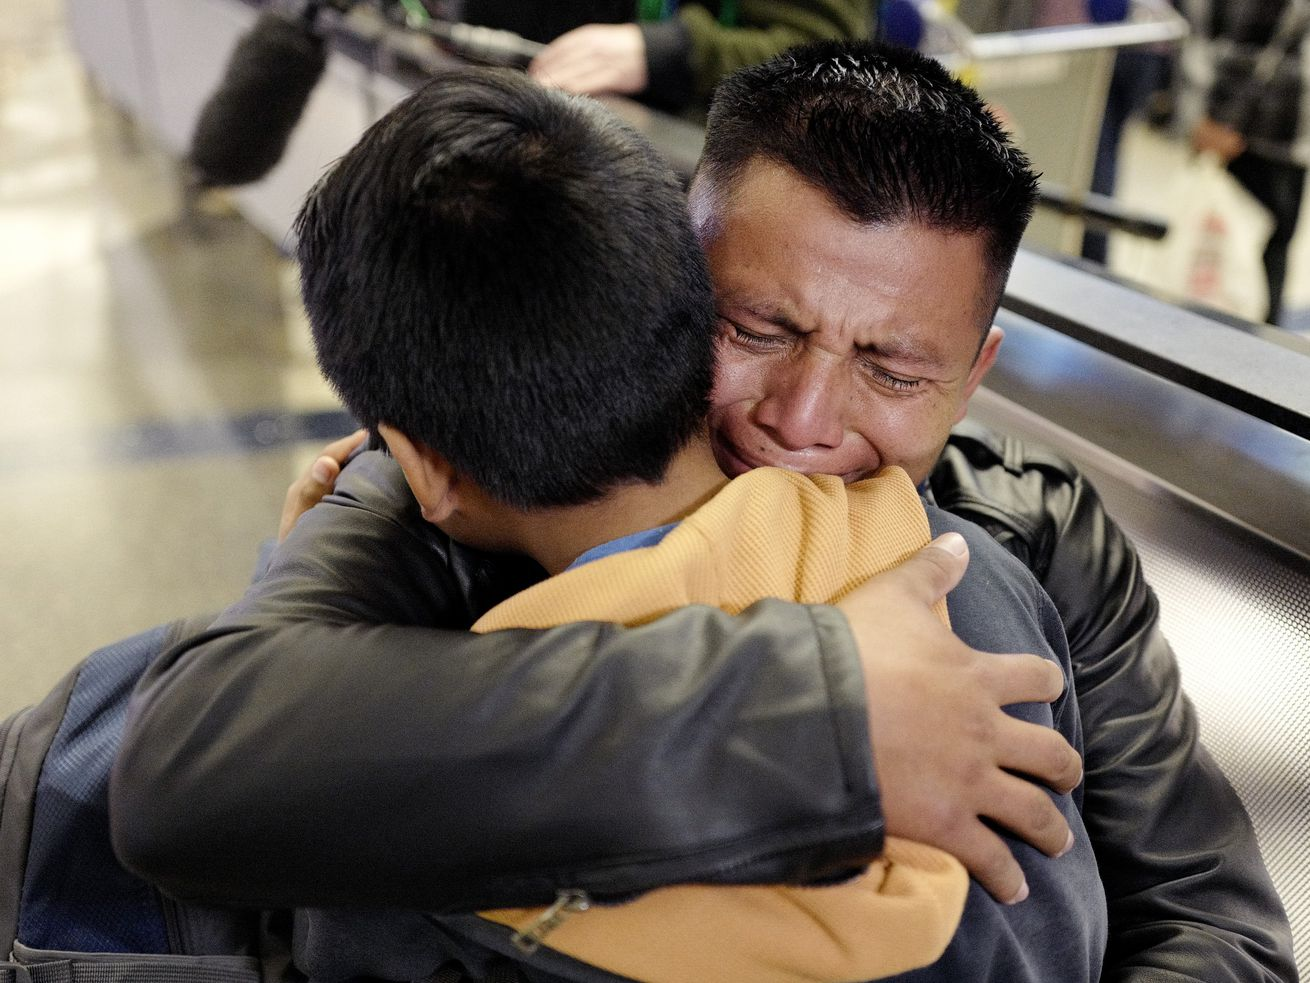 In this Wednesday, Jan. 22, 2020, file photo, David Xol-Cholom, of Guatemala, hugs his son Byron at Los Angeles International Airport as they reunite after being separated during the Trump administration's wide-scale separation of immigrant families, in Los Angeles.